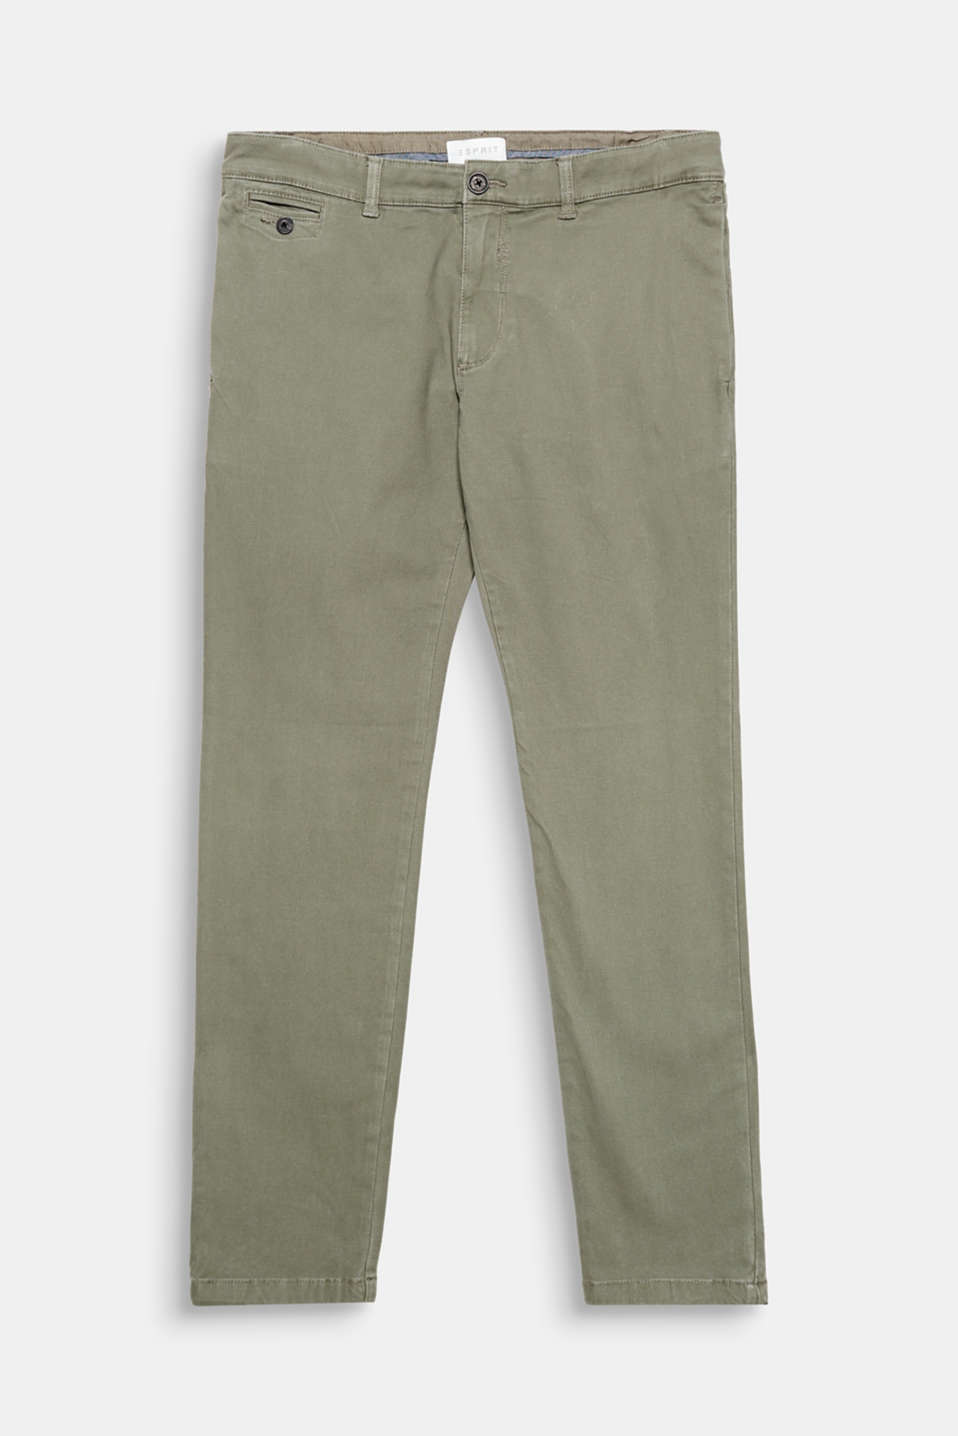 We love structure! The grainy, textured fabric gives these chinos their exciting smart-casual style